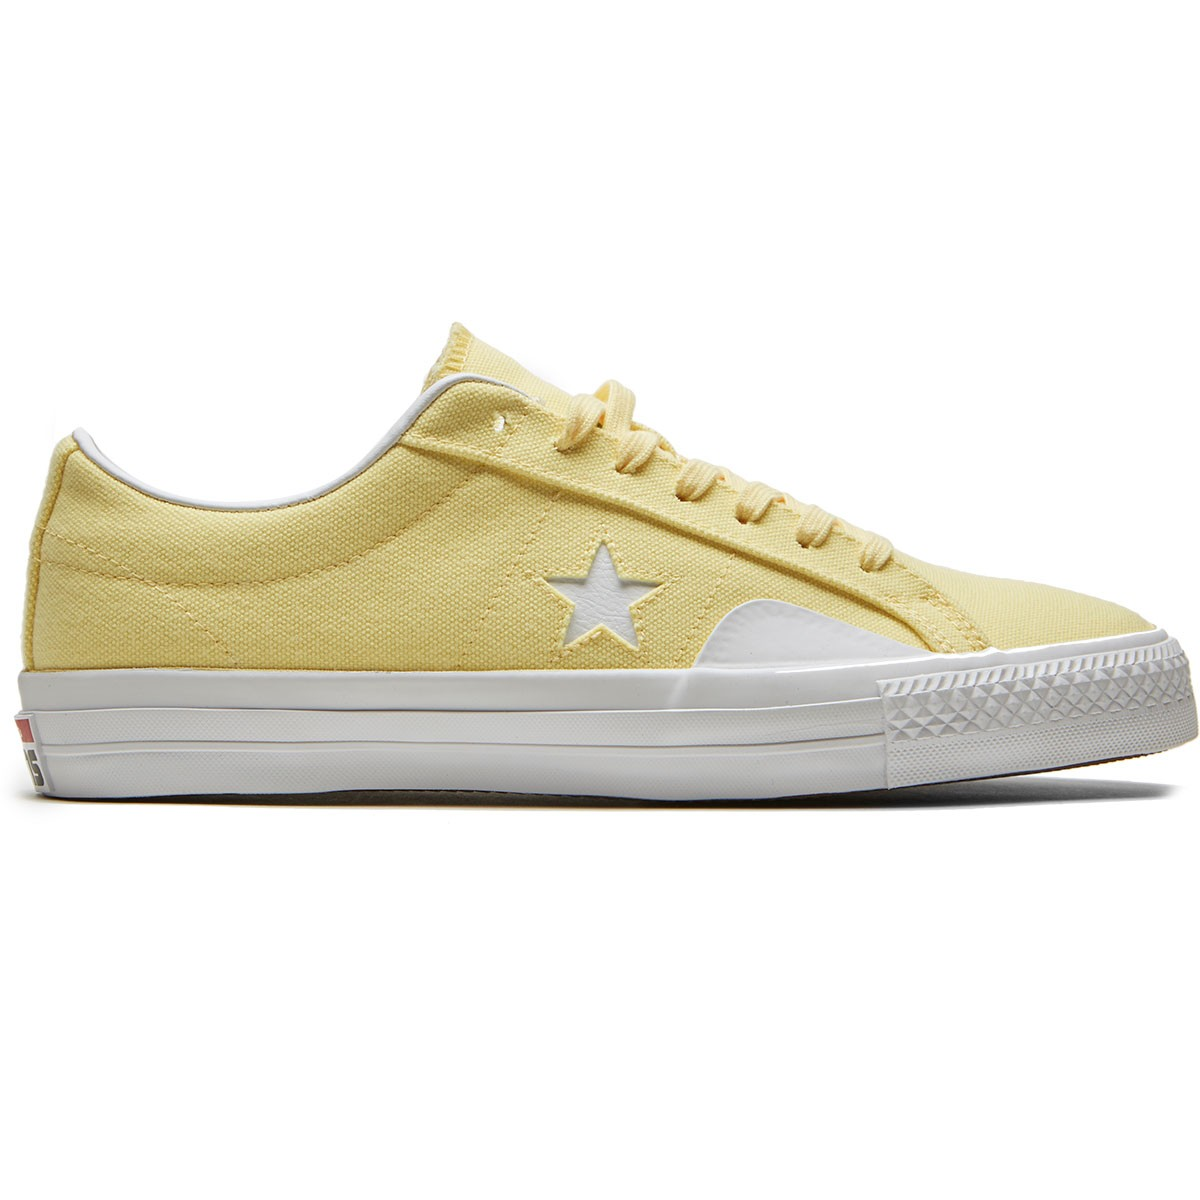 Converse X Chocolate One Star Pro Kenny Anderson Shoes